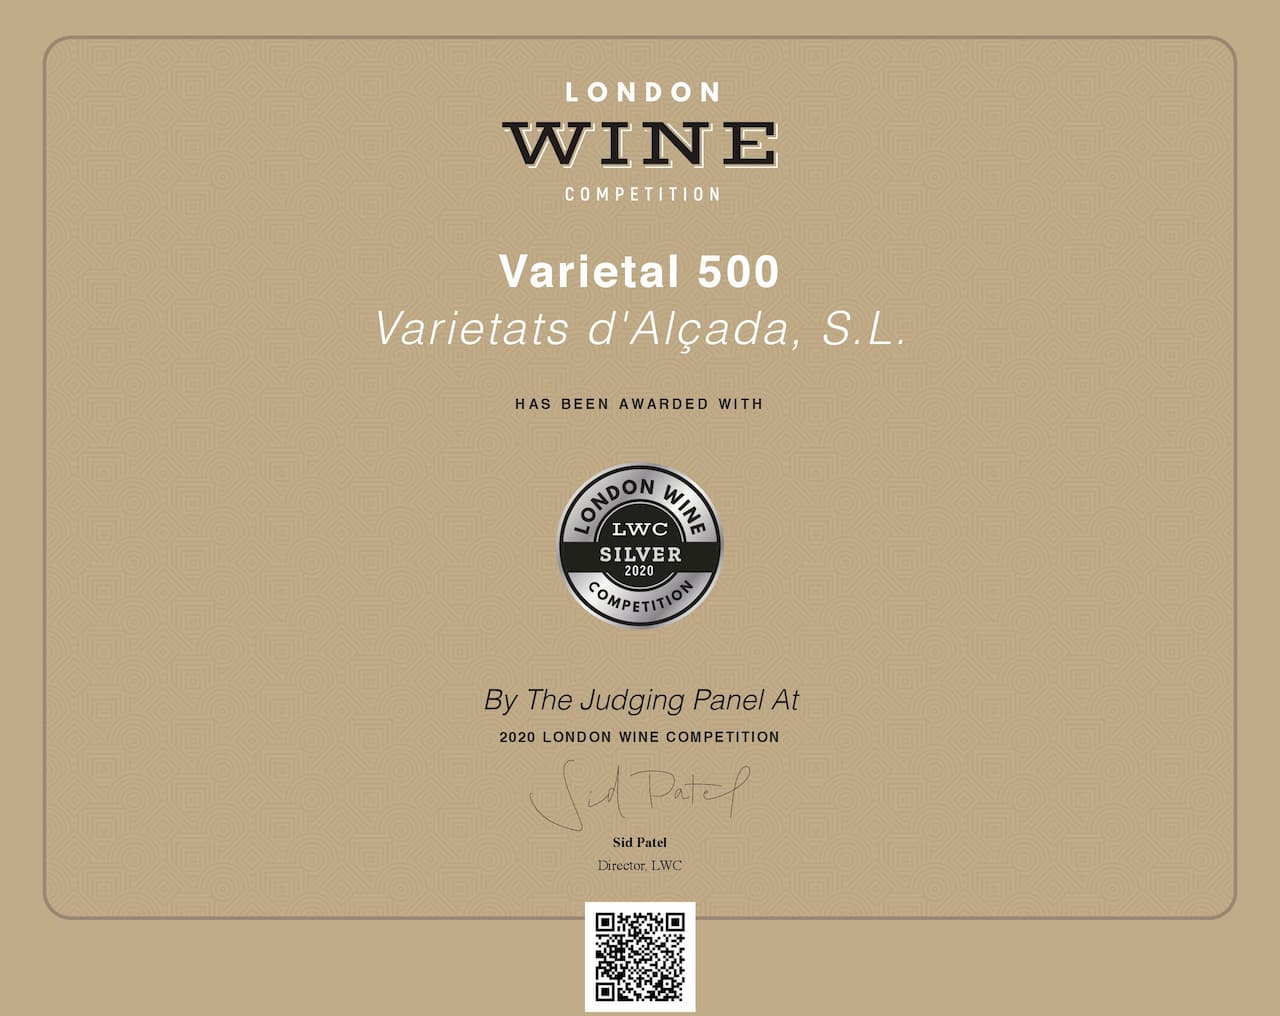 London Wine Competition Award